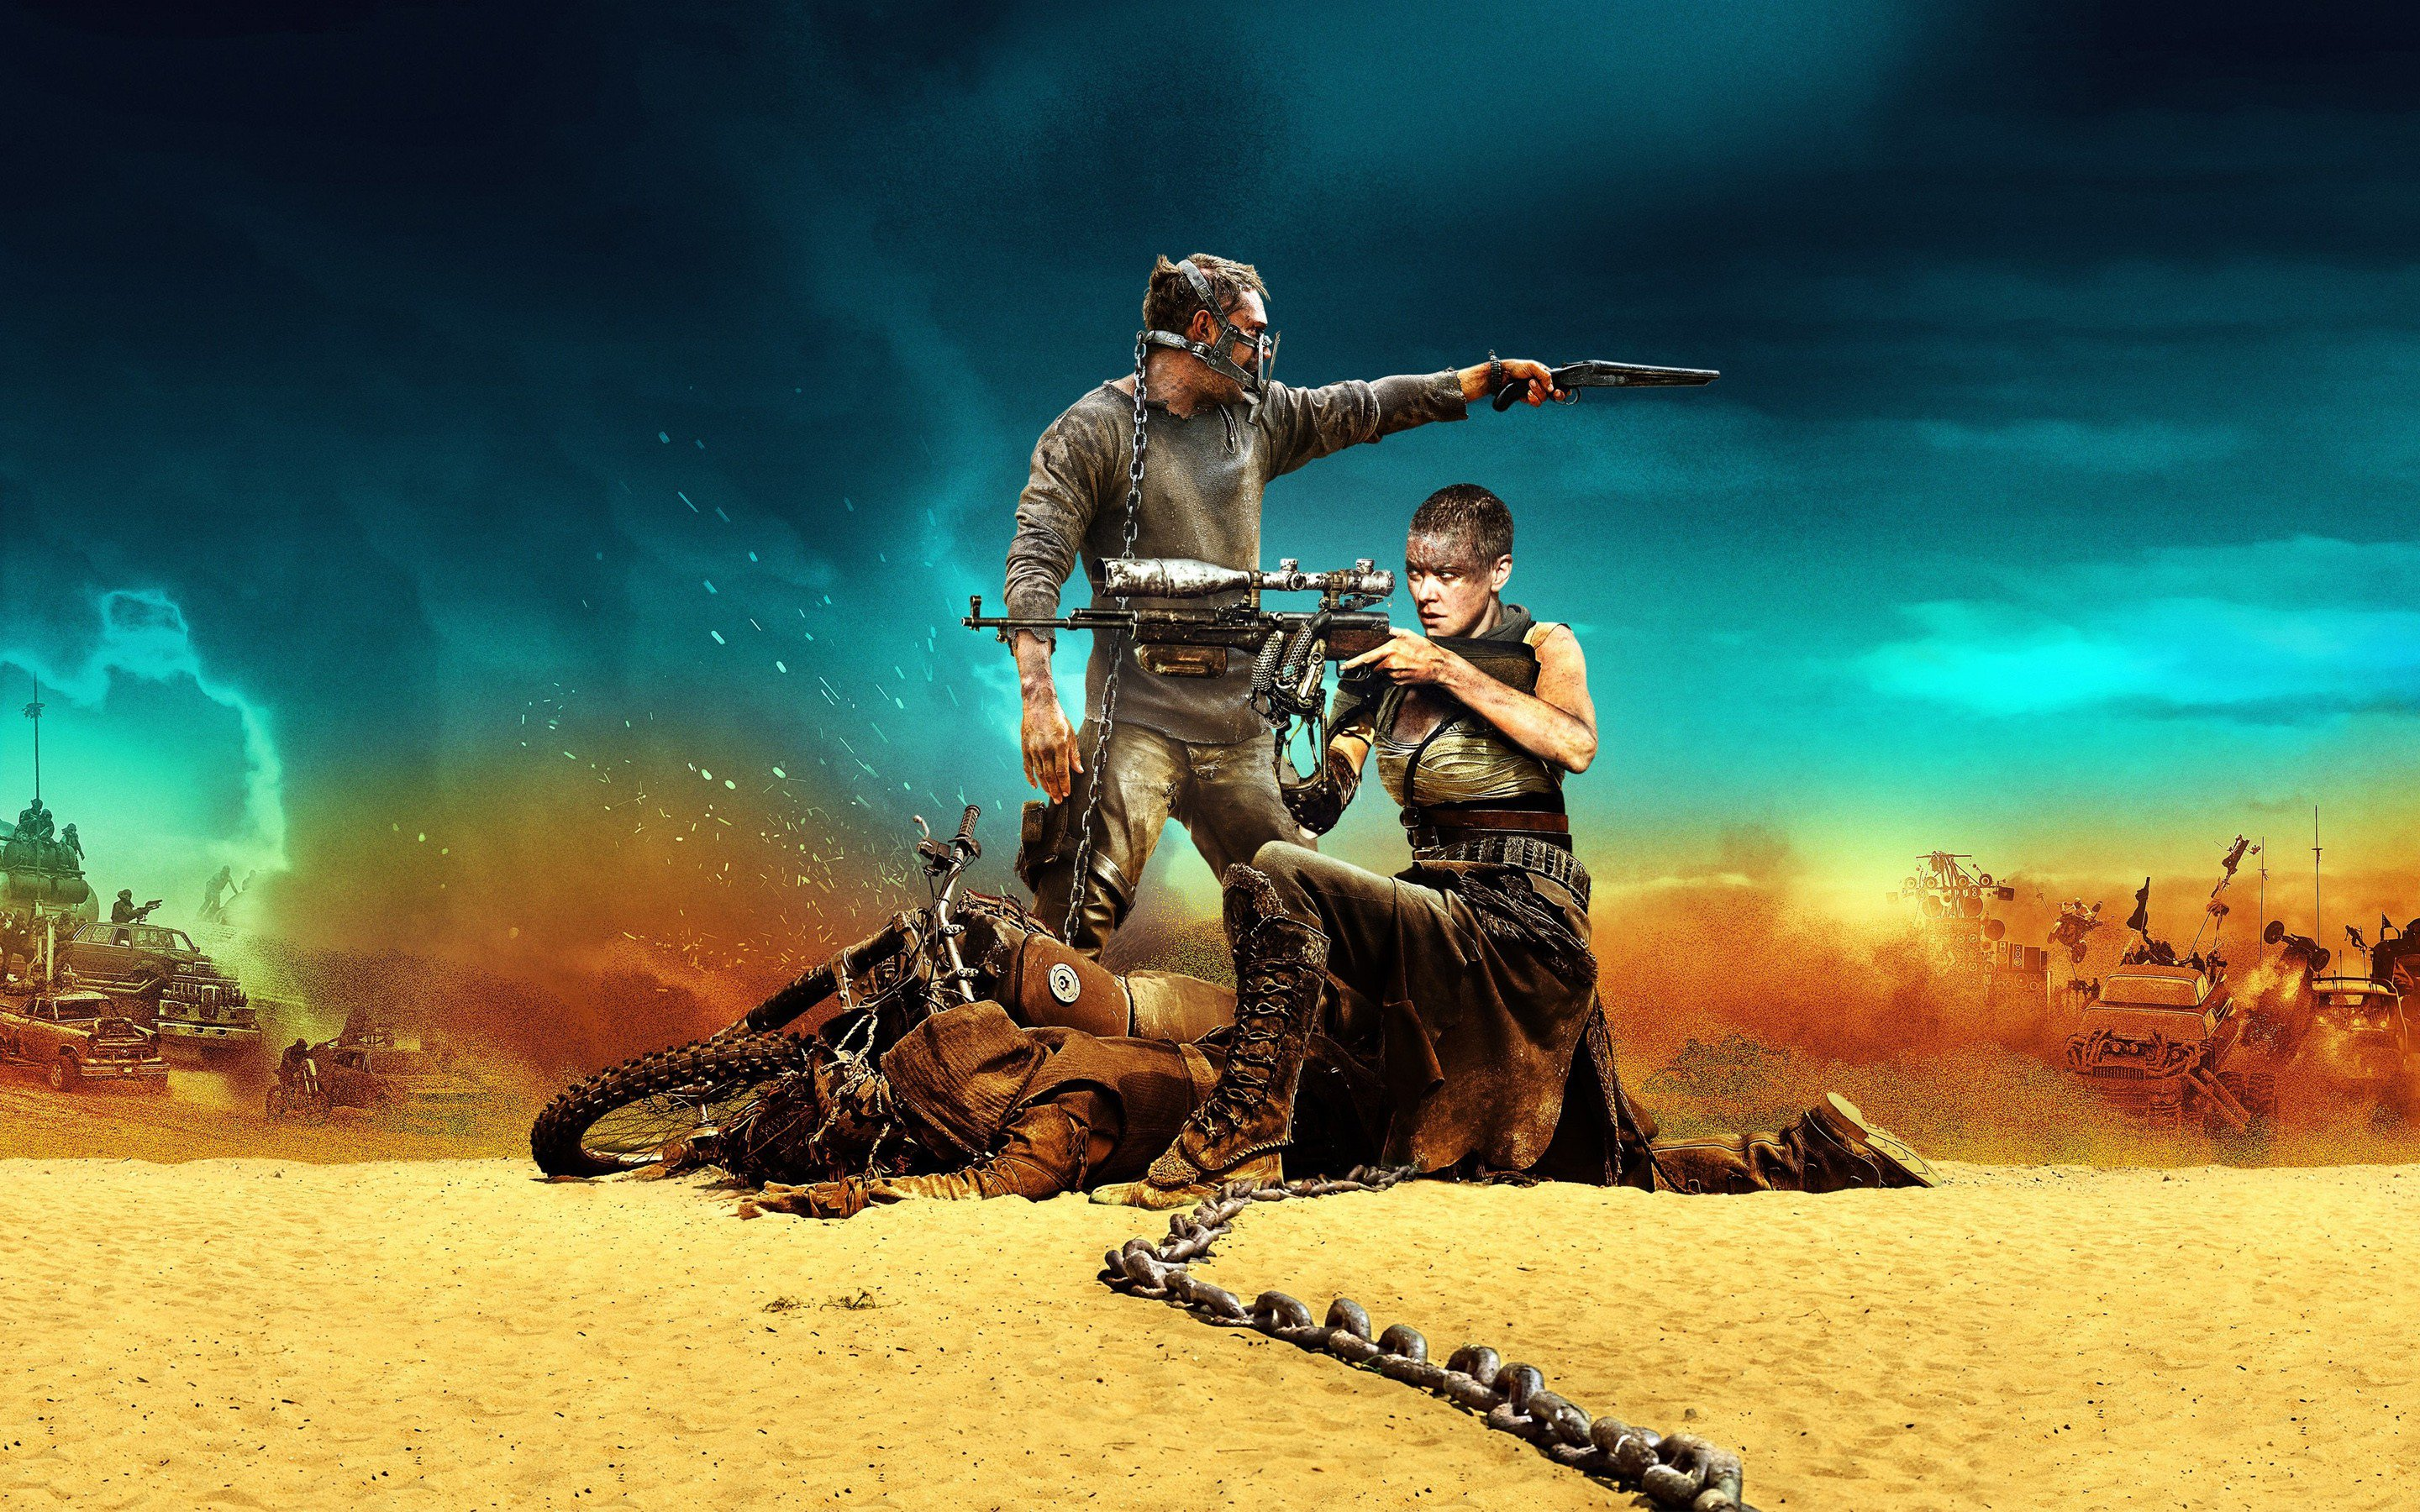 16 Hd Mad Max Fury Road Movie Wallpapers Hdwallsource Com